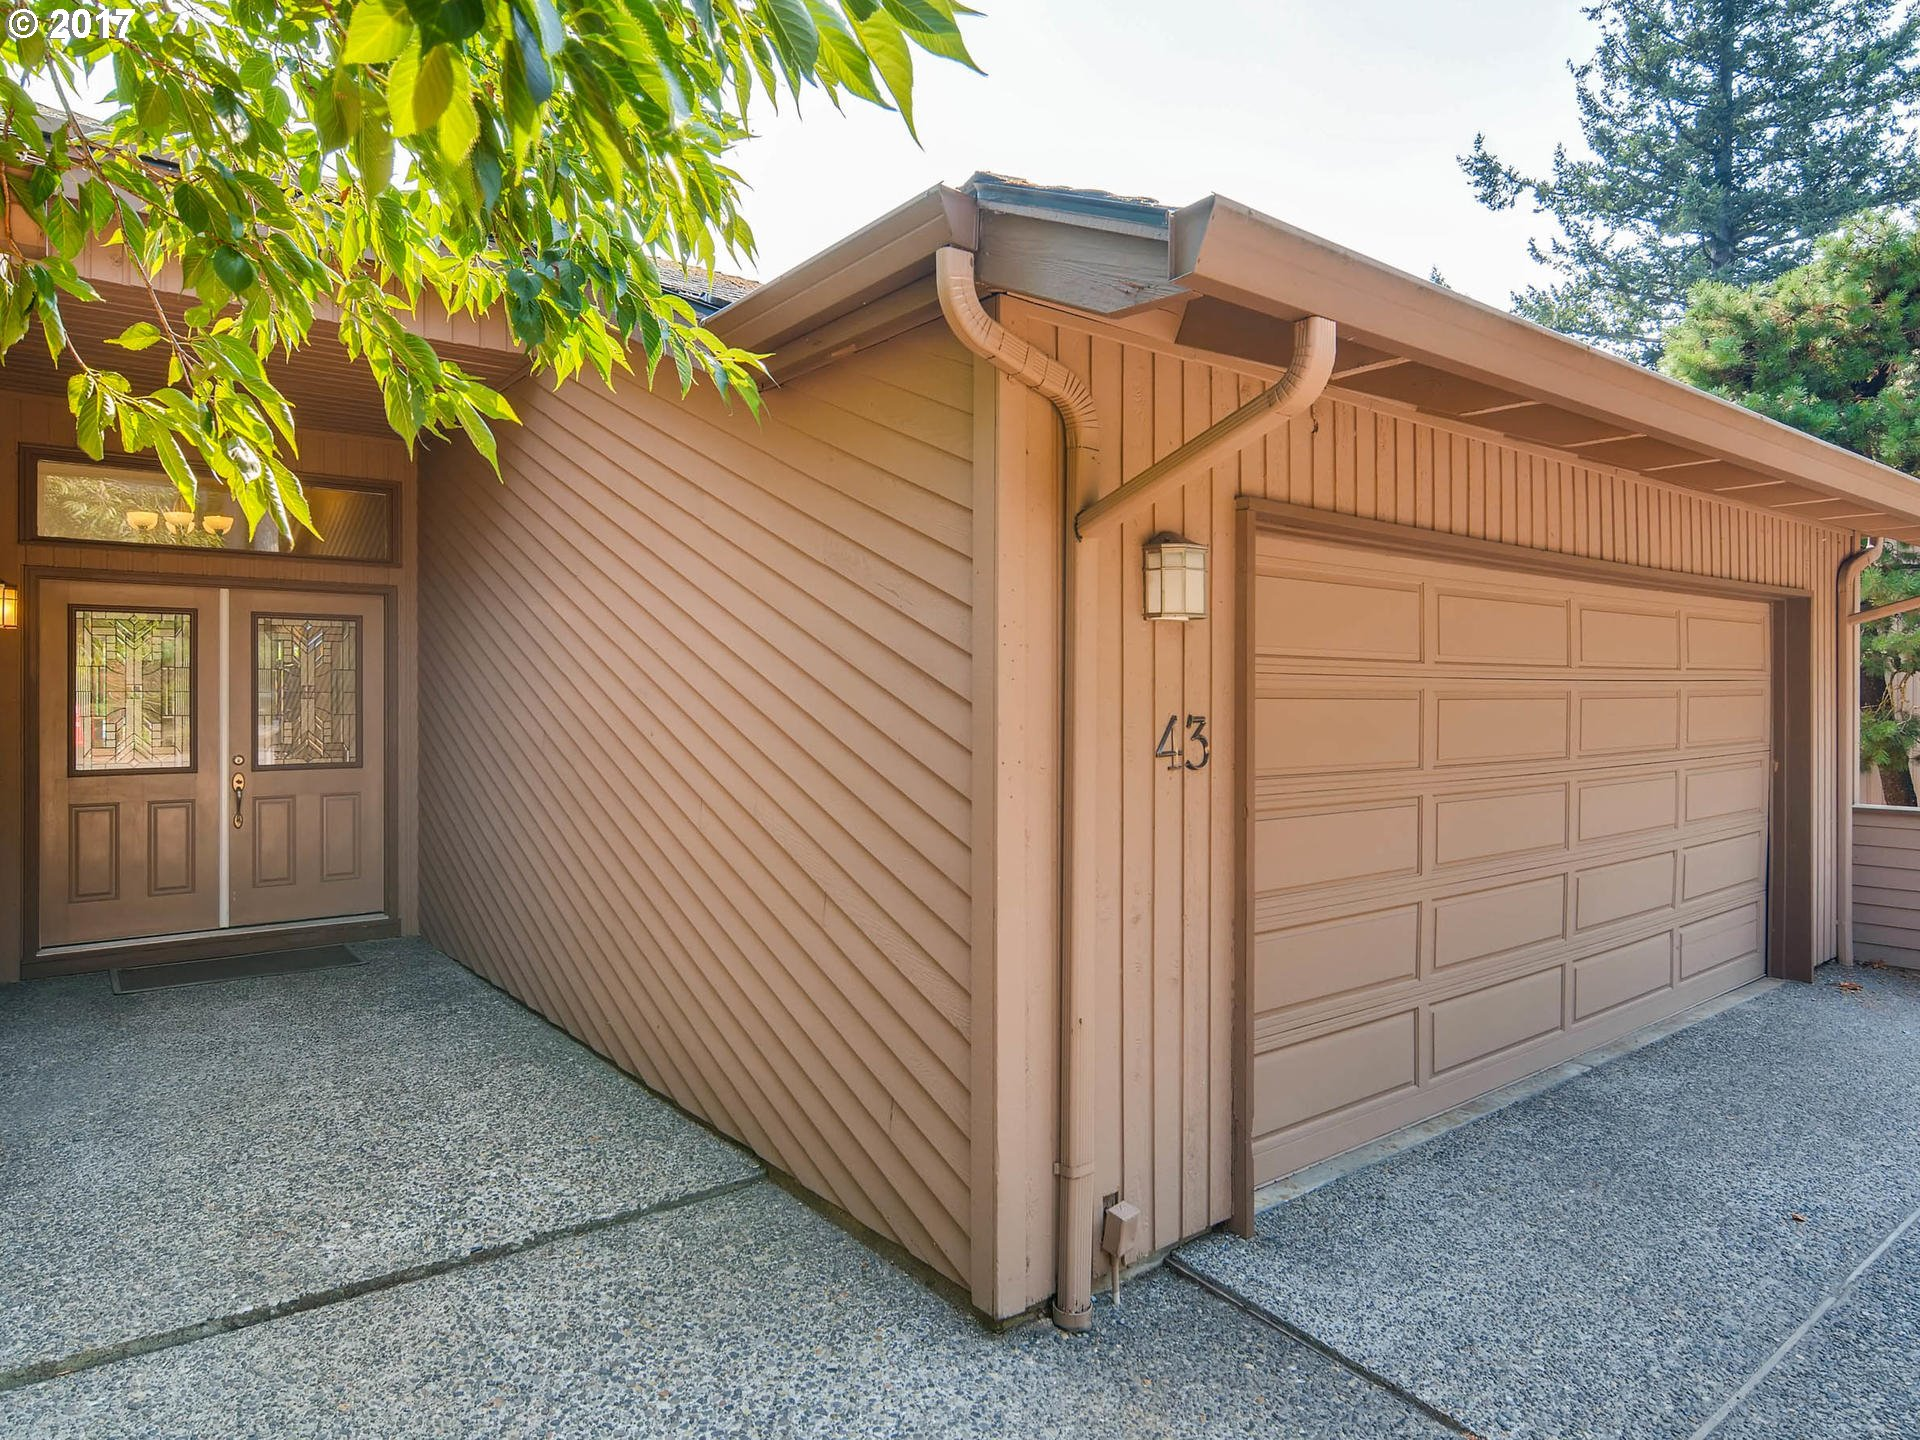 43 BECKET ST, Lake Oswego, OR 97035